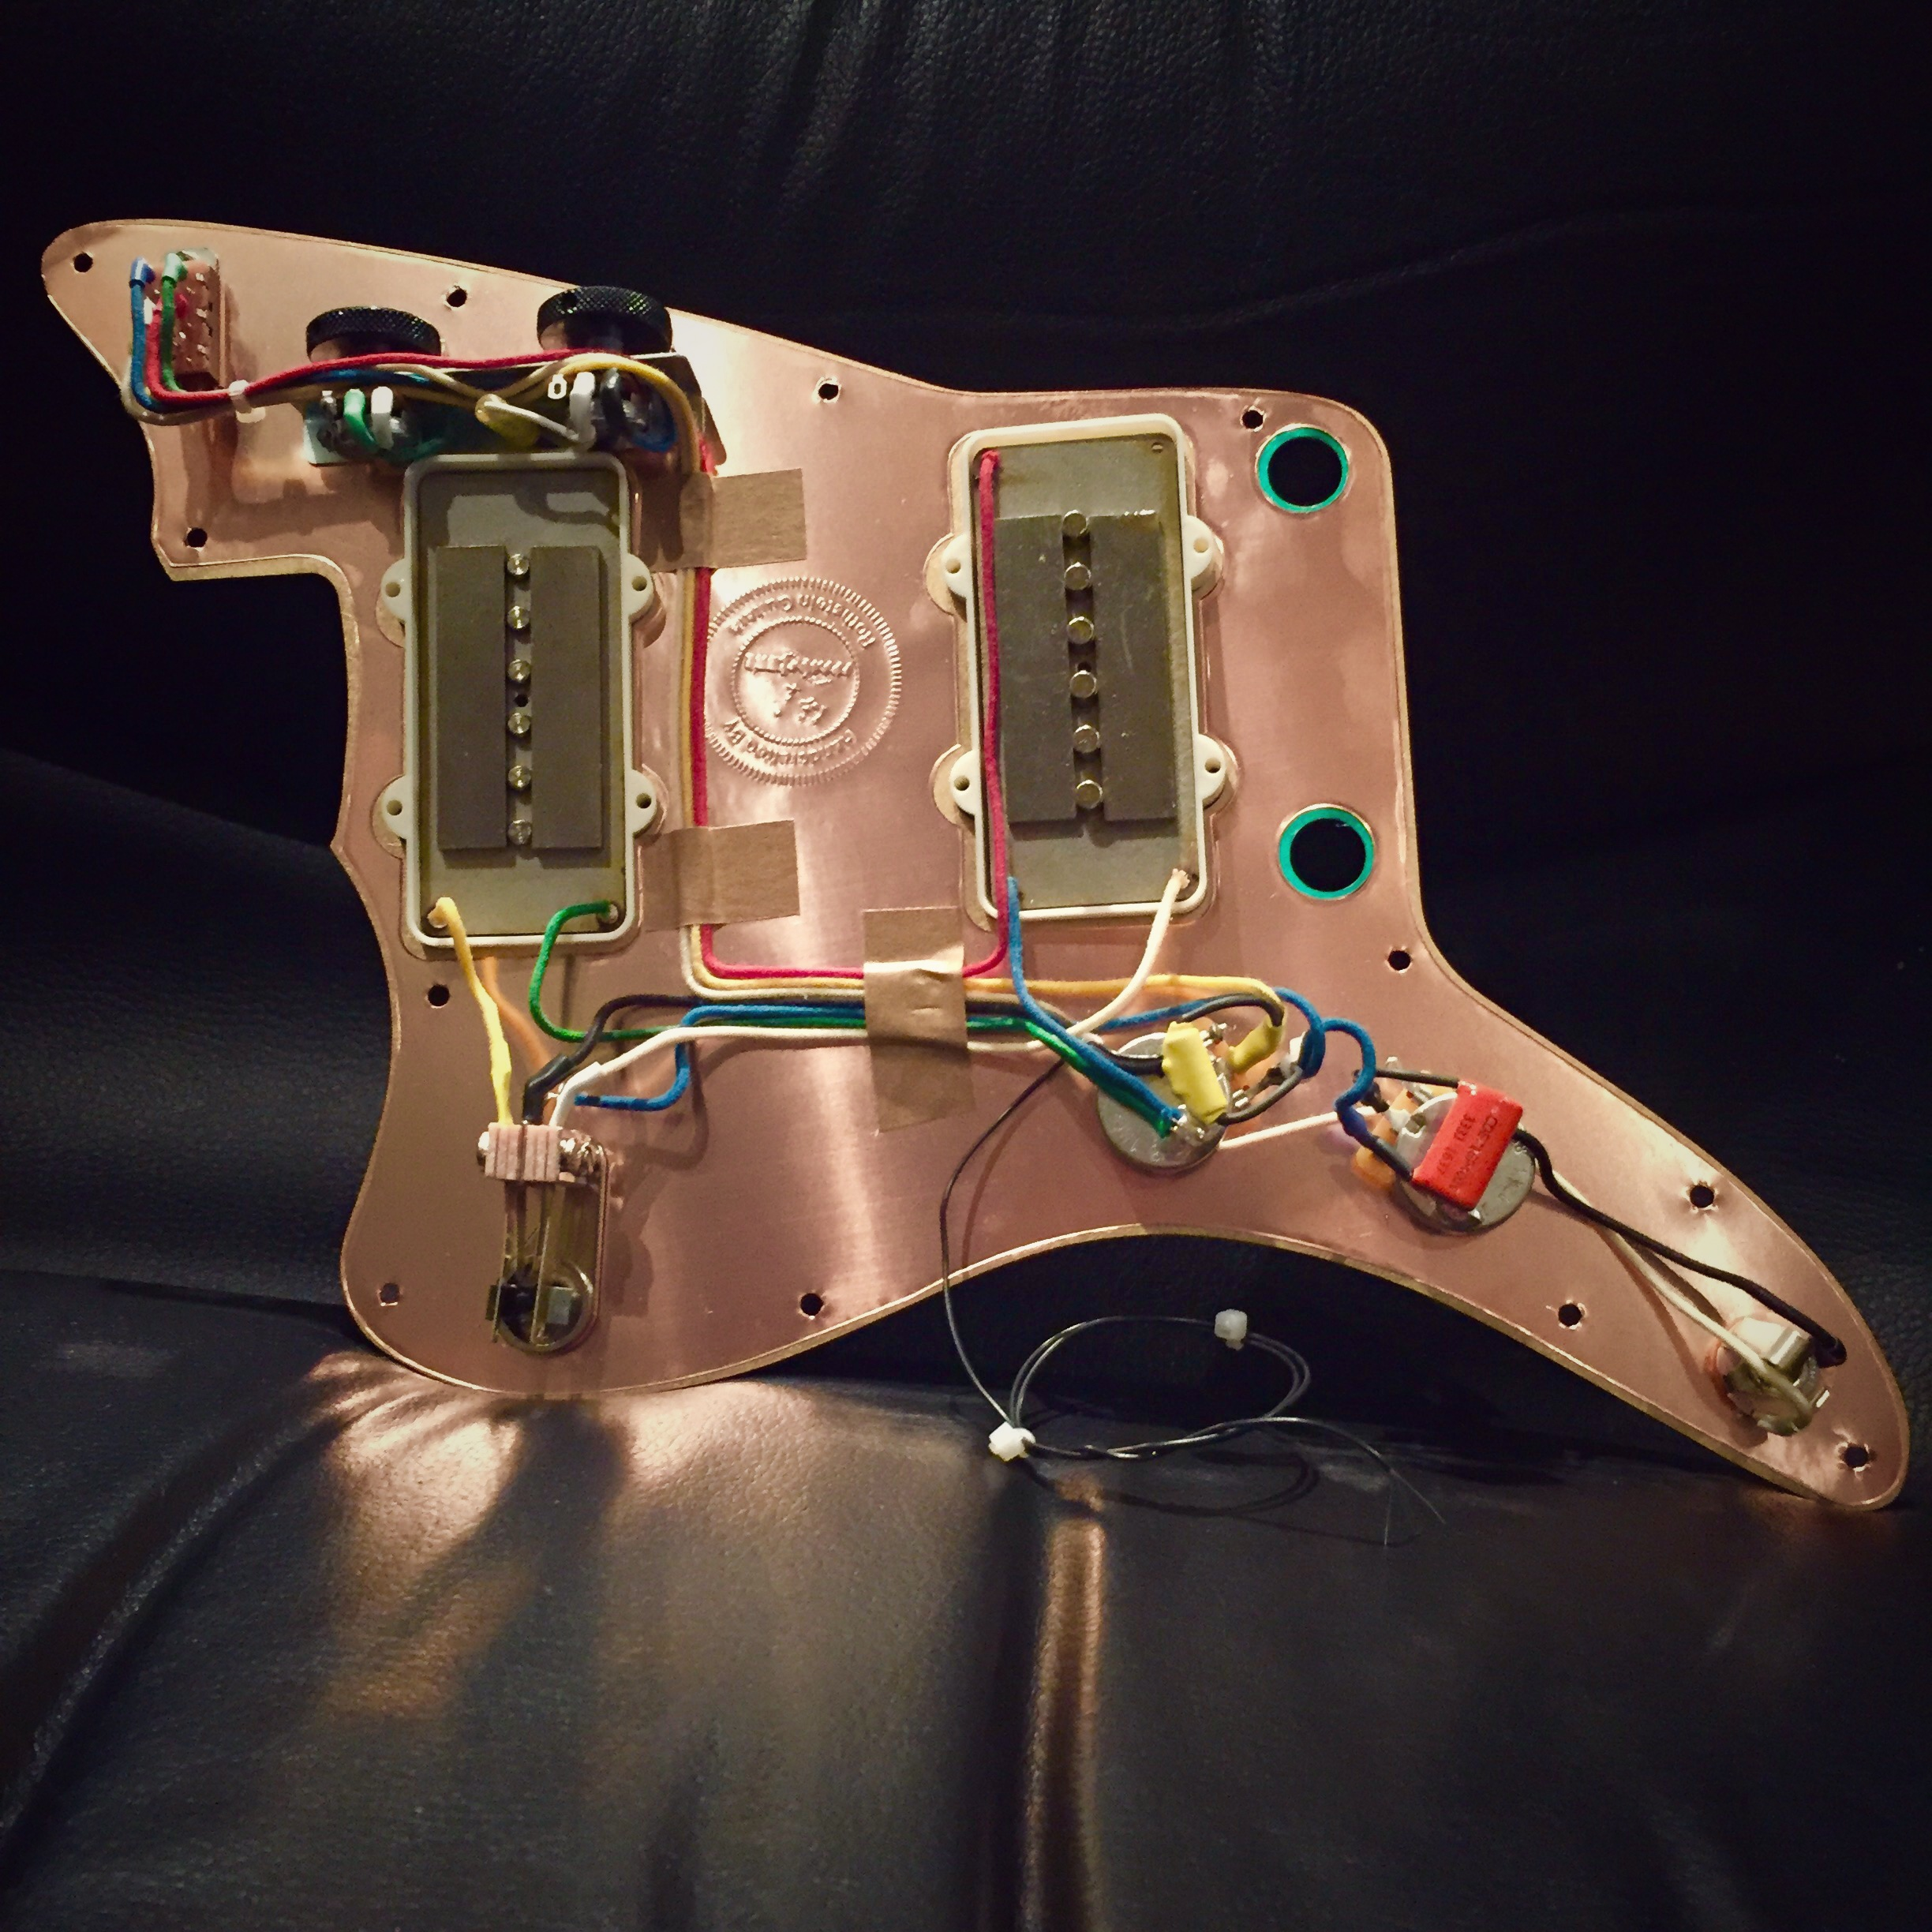 Jazzmaster: Rothstein Guitars on gibson les paul wiring harness, fender stratocaster wiring harness, p bass wiring harness, les paul custom wiring harness, tele wiring harness, fender jaguar wiring harness,